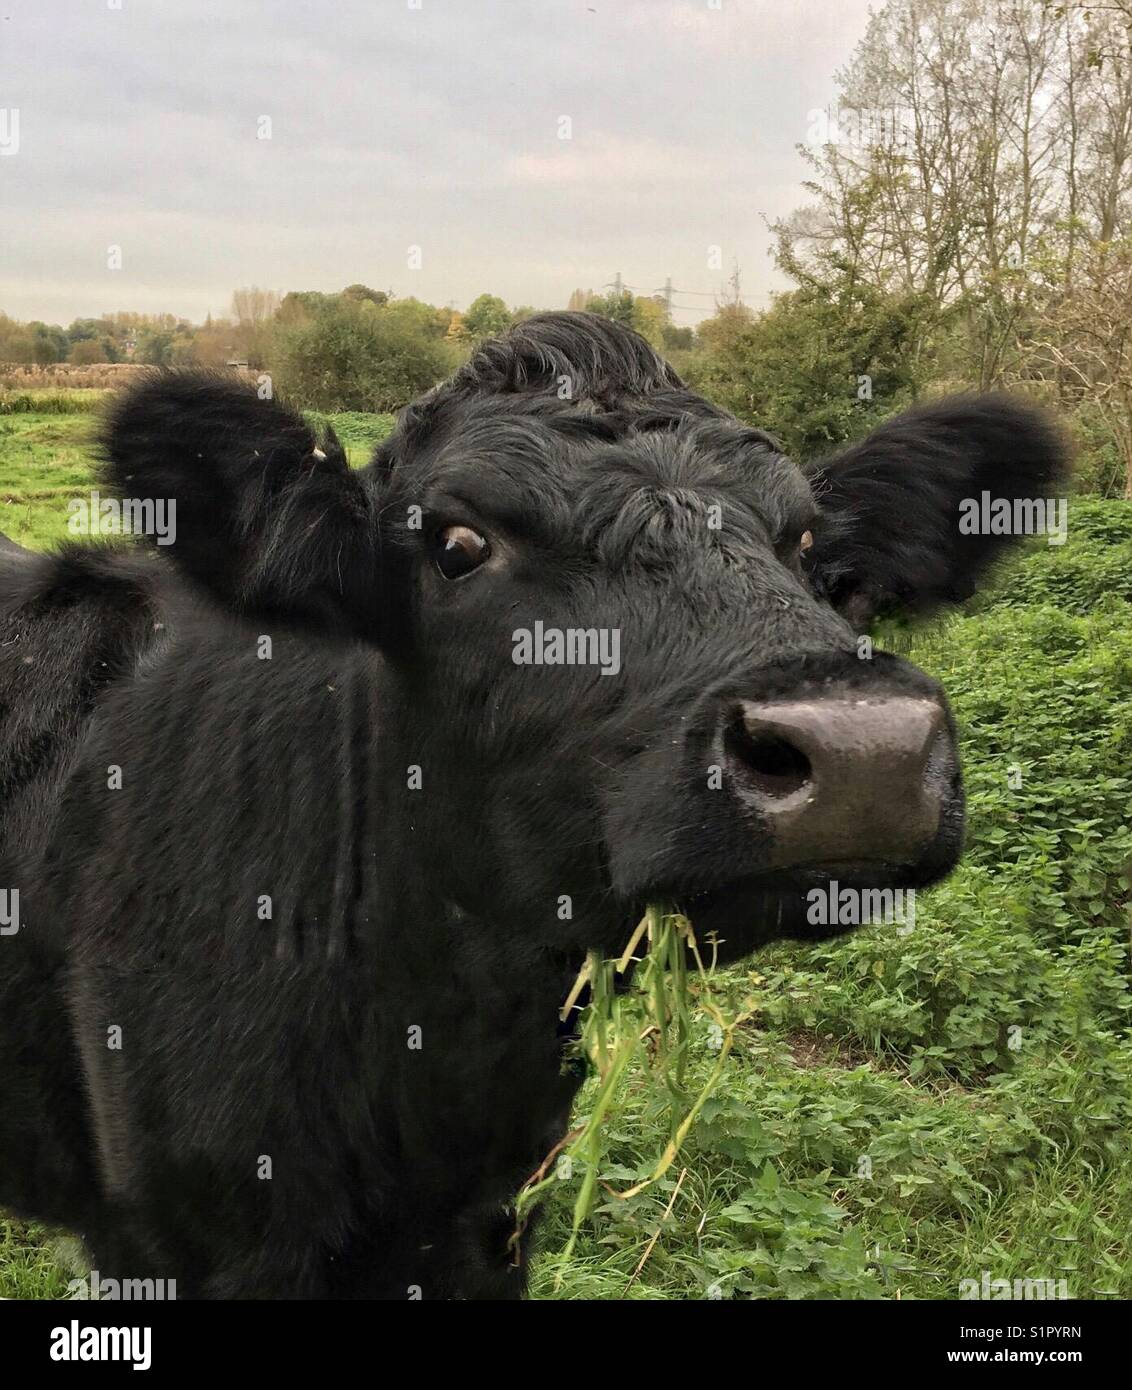 Close up of a small black heifer with a mouthful of grass. - Stock Image